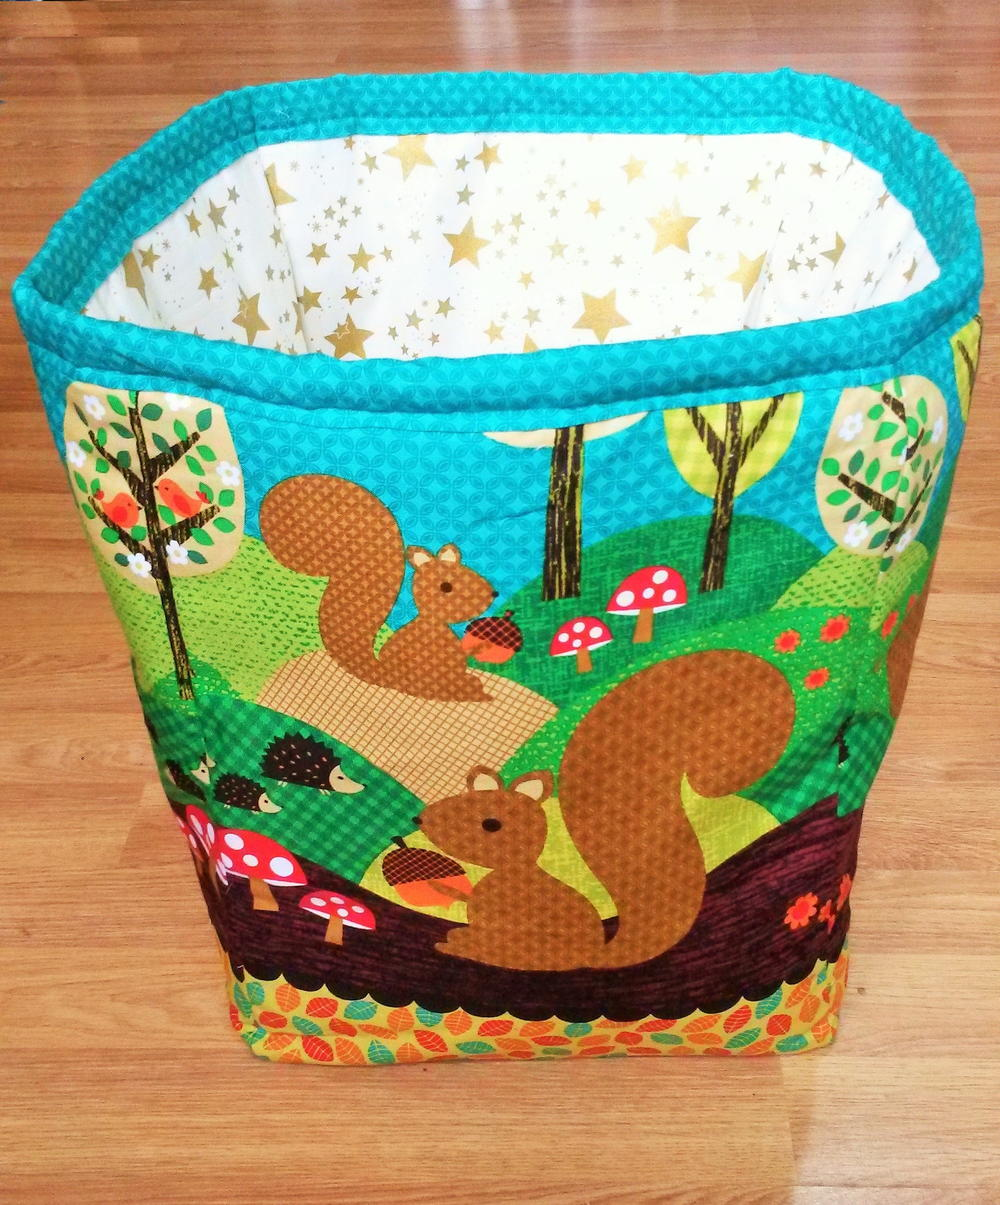 Fabric Diy Laundry Basket Allfreesewing Com